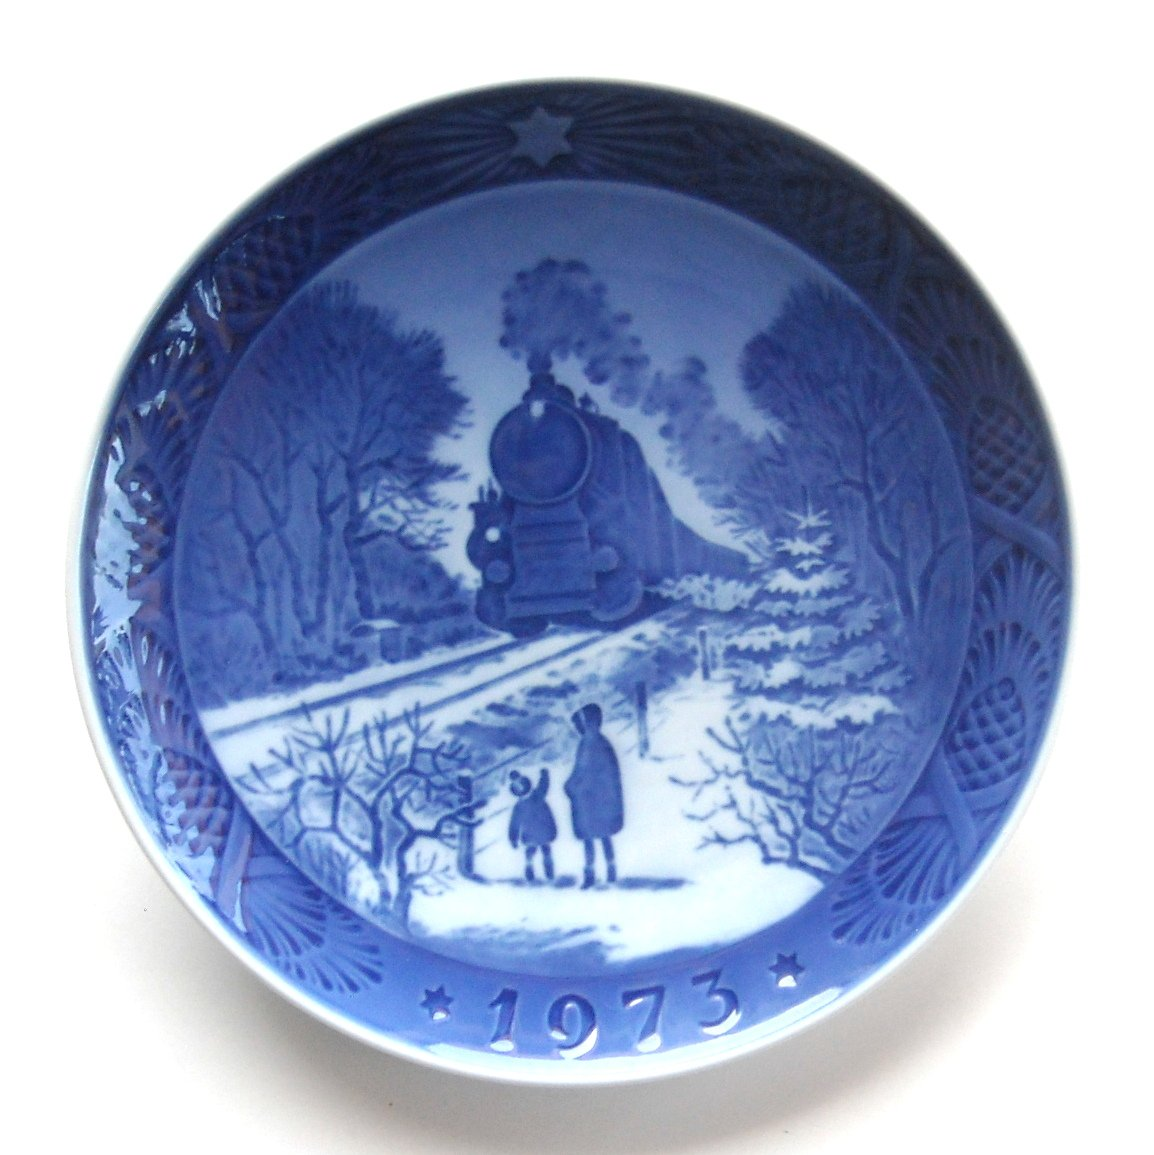 Royal Copenhagen 1973 Christmas Plate